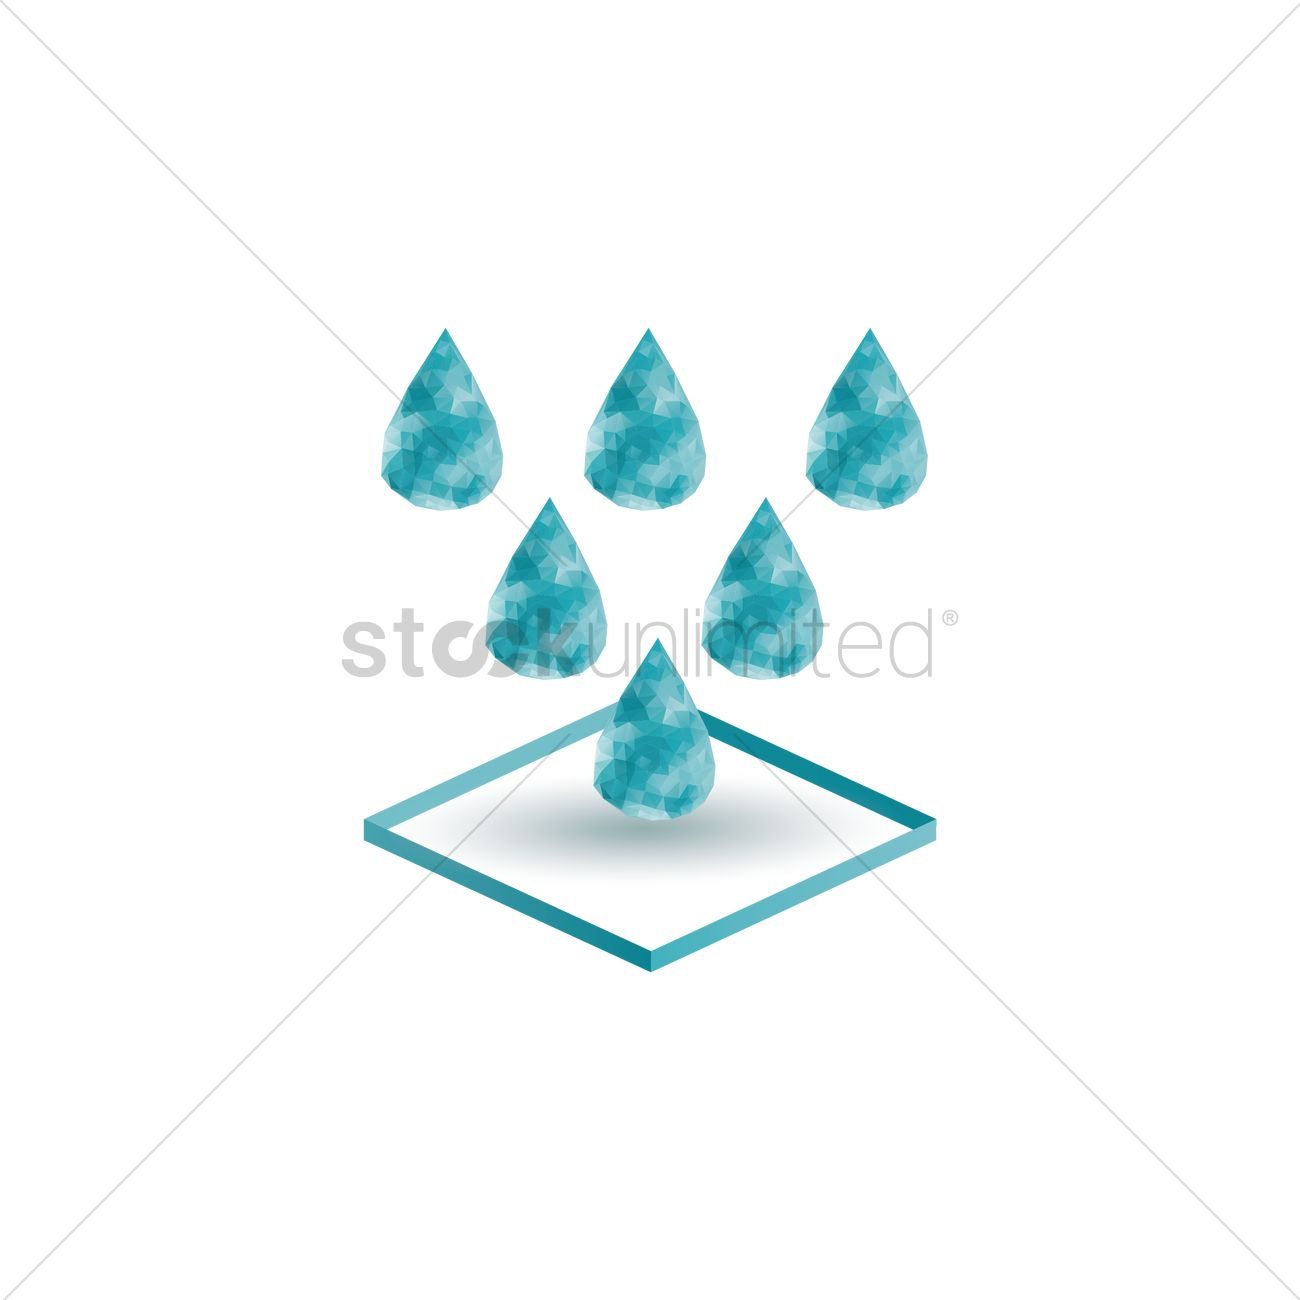 Water droplets vector image 1556704 stockunlimited water droplets vector graphic biocorpaavc